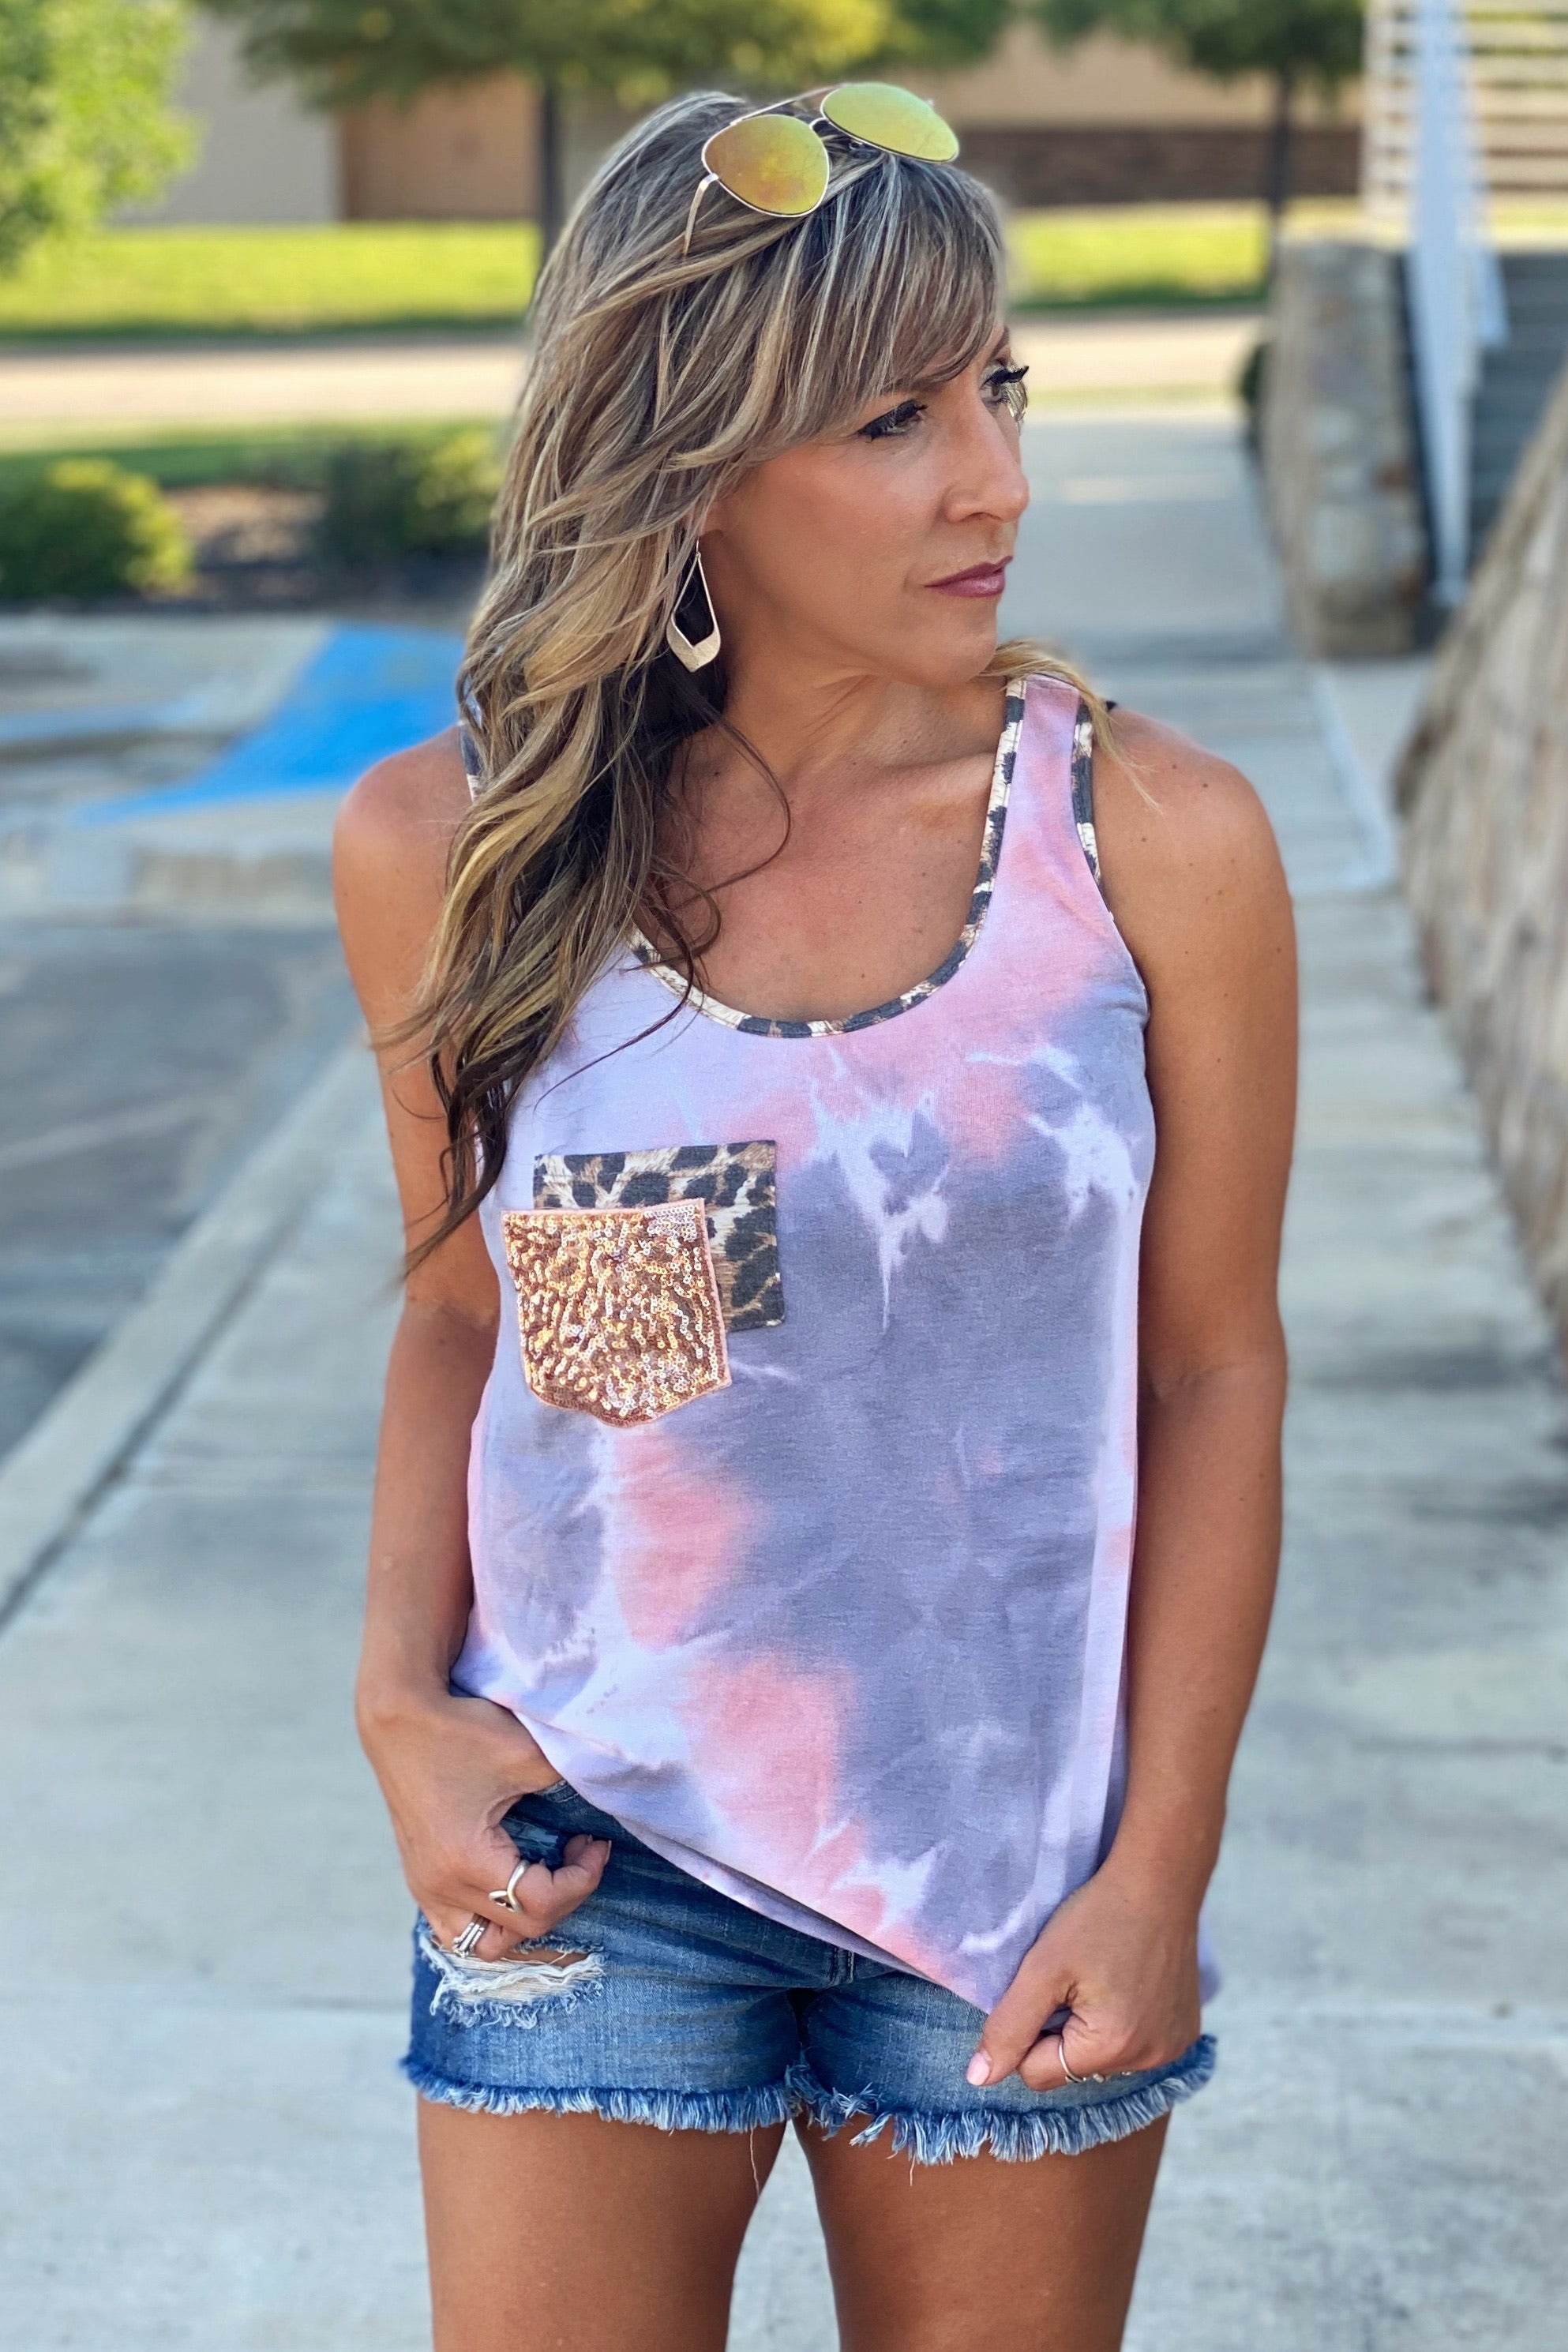 French Terry Tie Dye Tank Top with Animal Print Trim &  Double Pocket with Glitter, Pink, S-XL